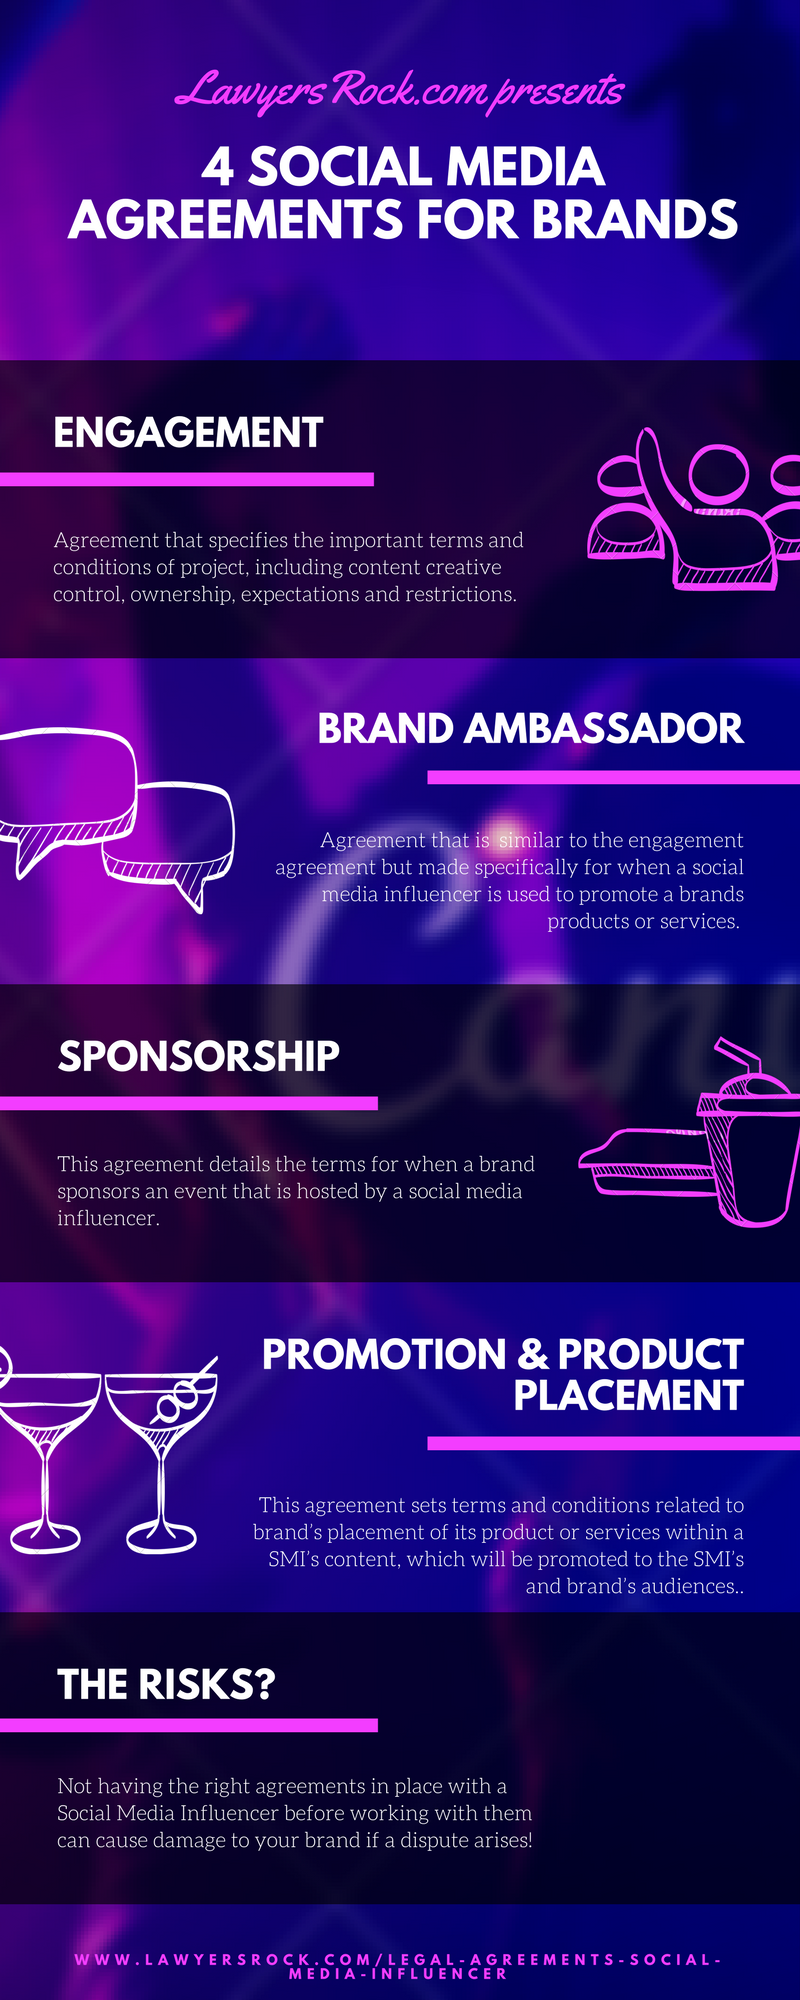 4 Agreements Your Brand Needs Before Working With A Social Media